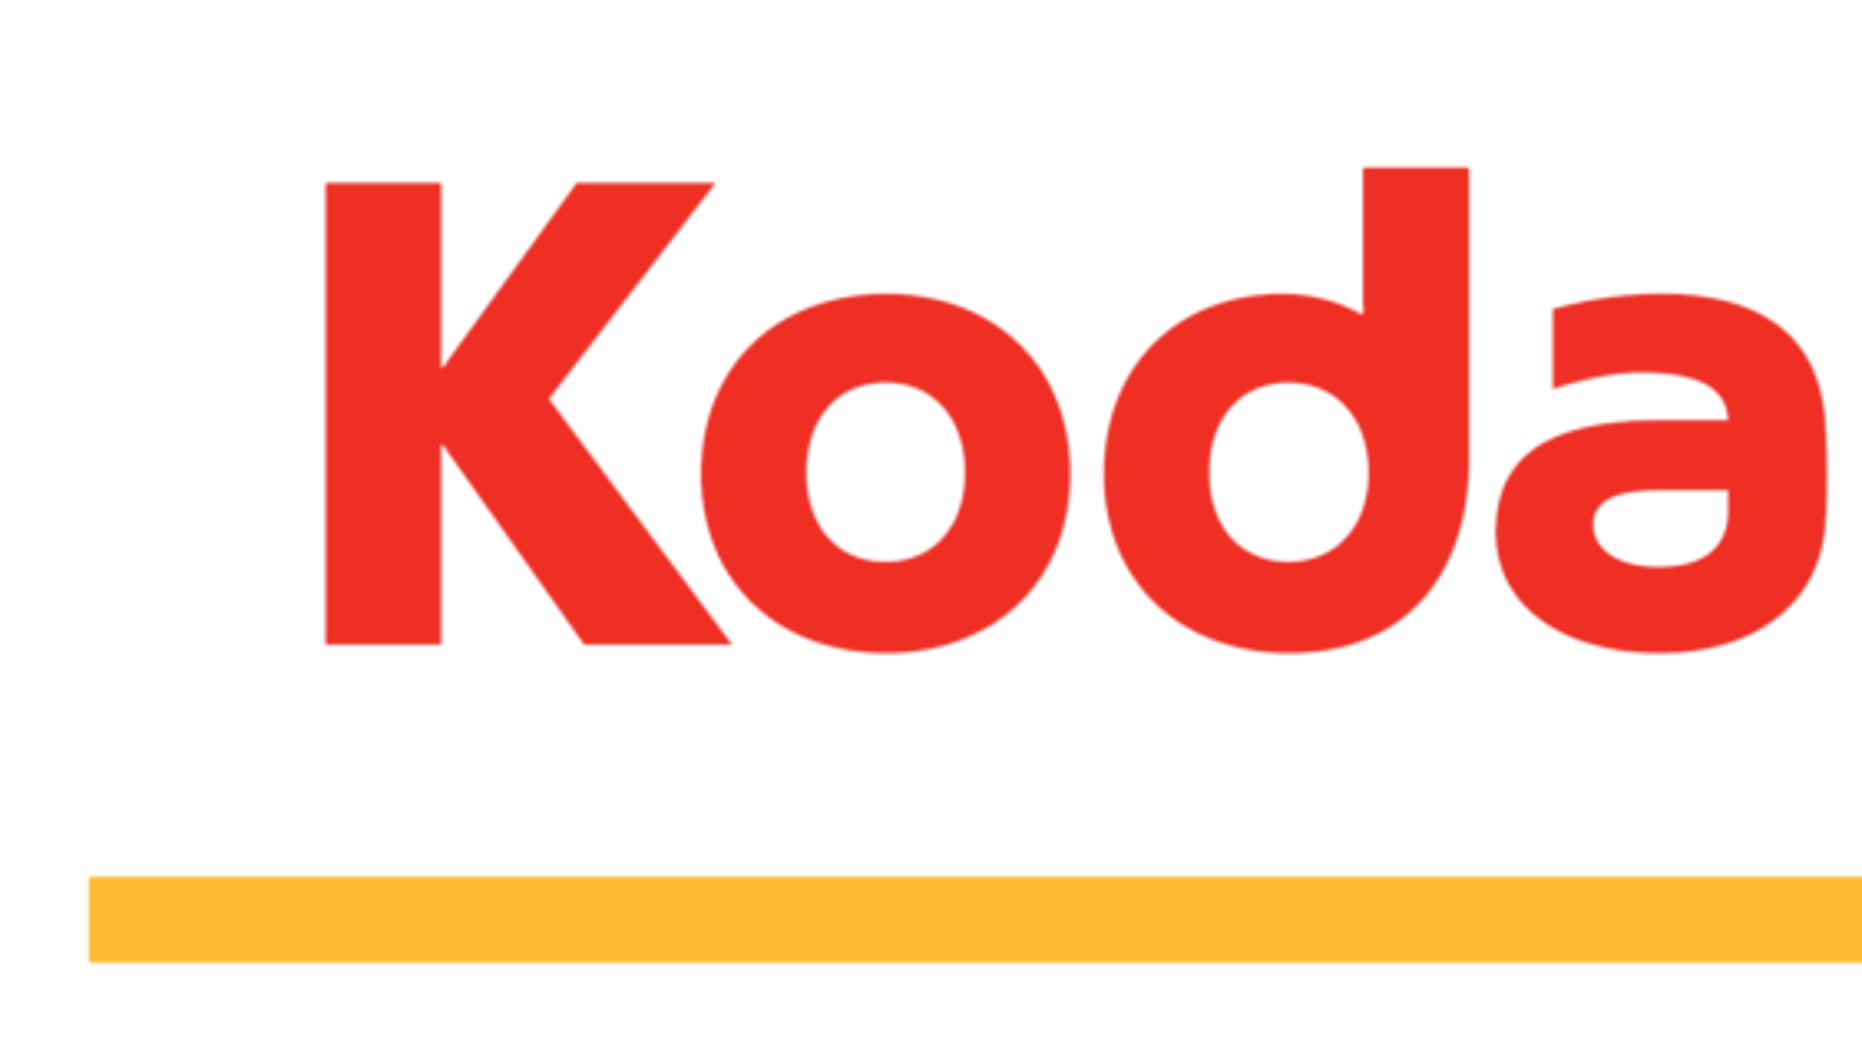 Westlake Legal Group Kodak-Logo-768x317 This Day in History: Sept. 4 fox-news/us/this-day-in-history fox news fnc/us fnc article 62247f71-1e50-5504-87d4-3e422375422a